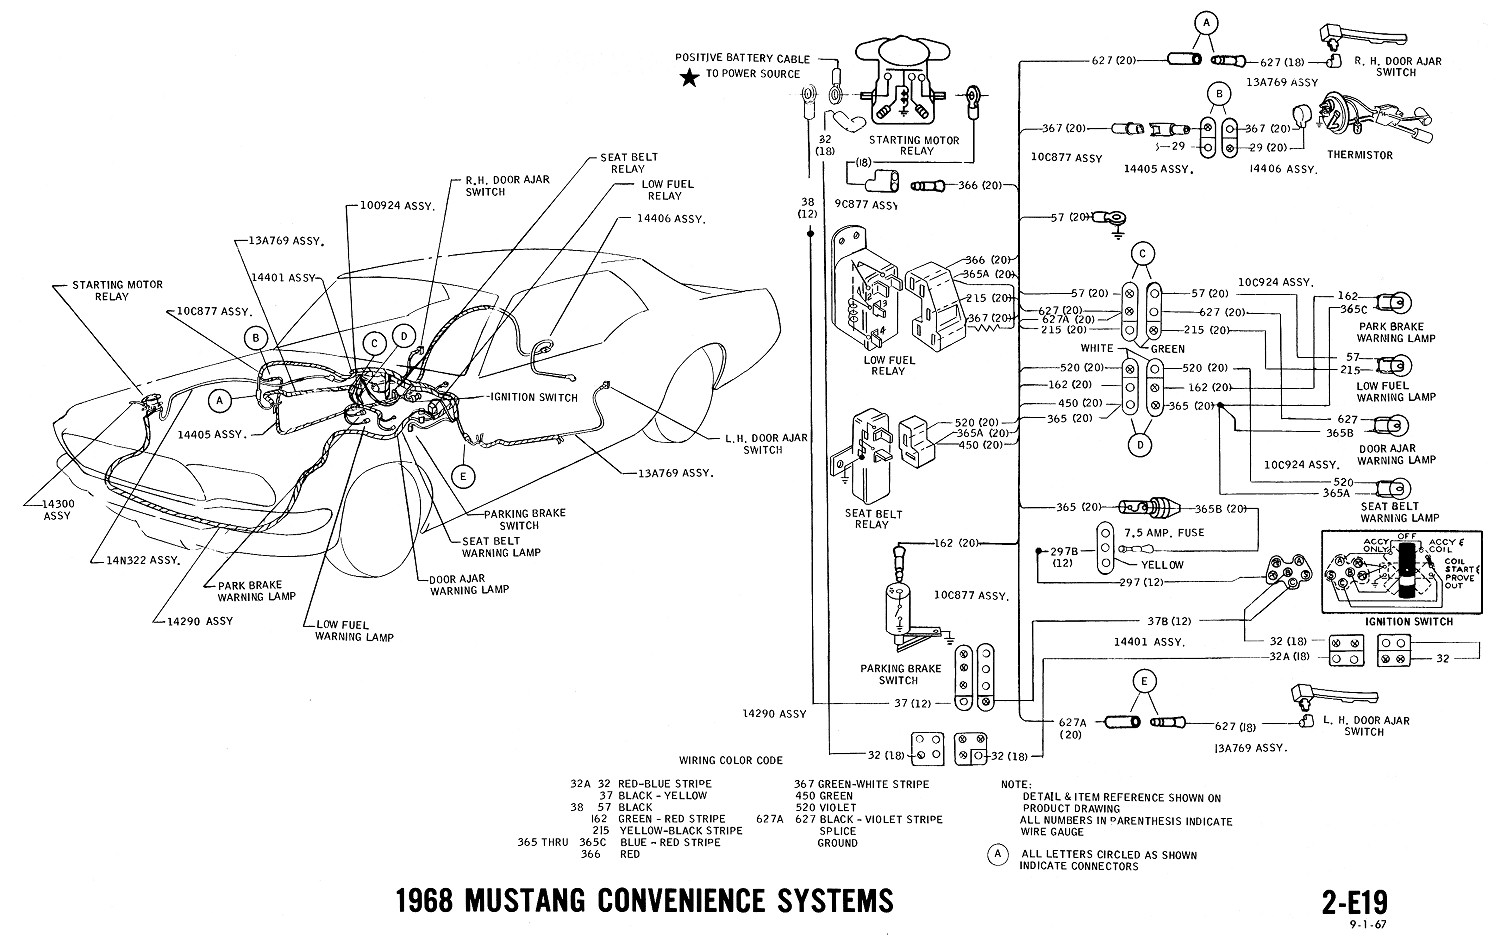 E19 1968 mustang wiring diagrams evolving software 1996 ford mustang wiring harness at crackthecode.co